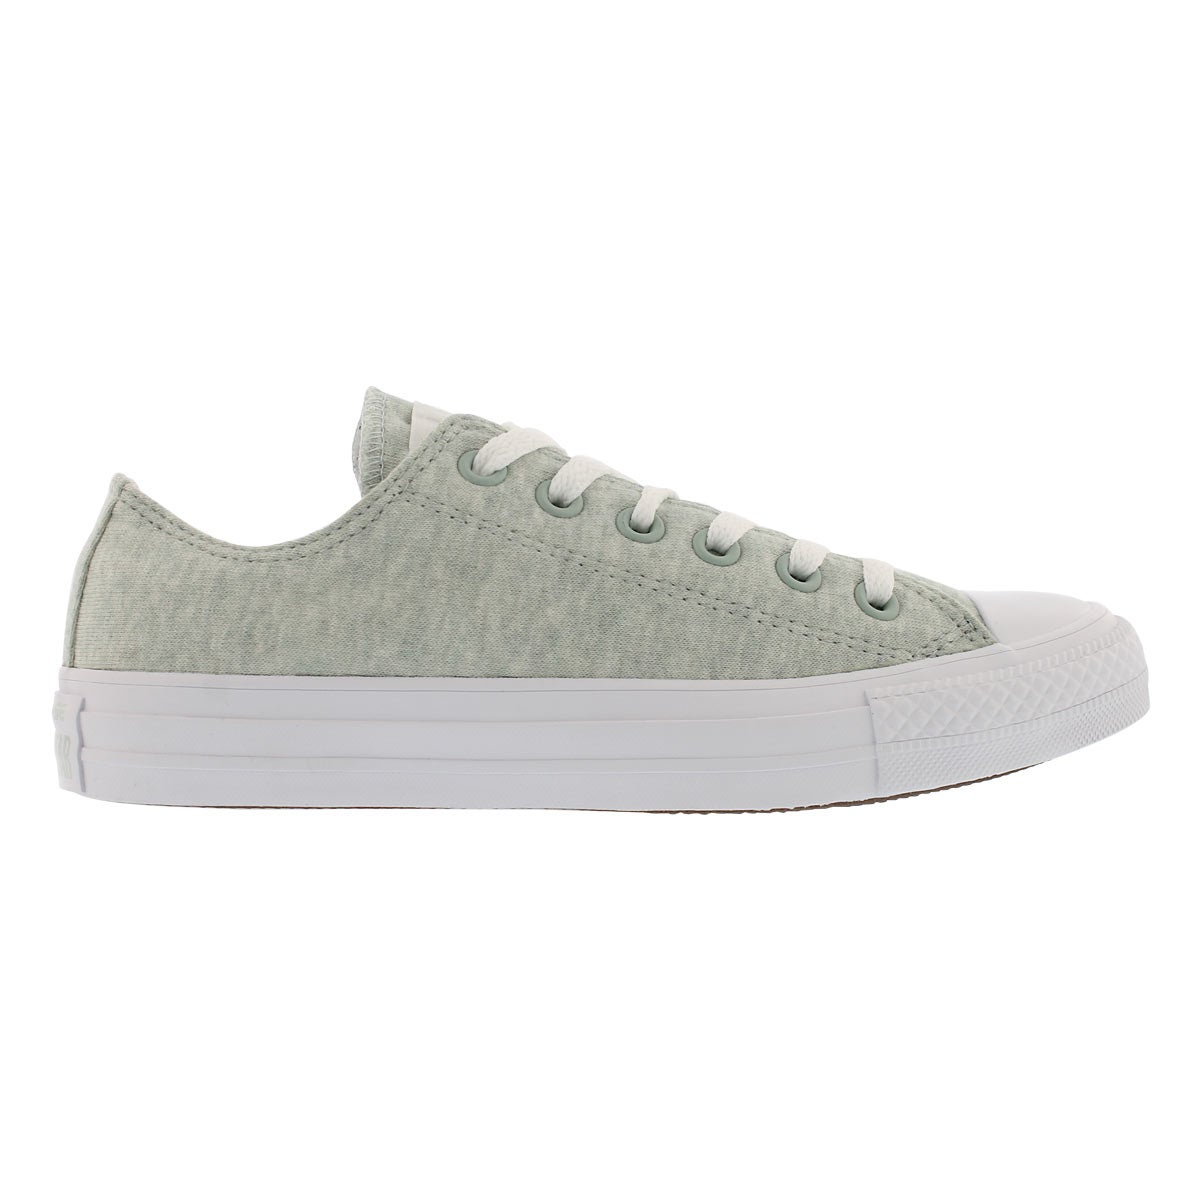 Lds CT AS Terry dried bamboo sneaker